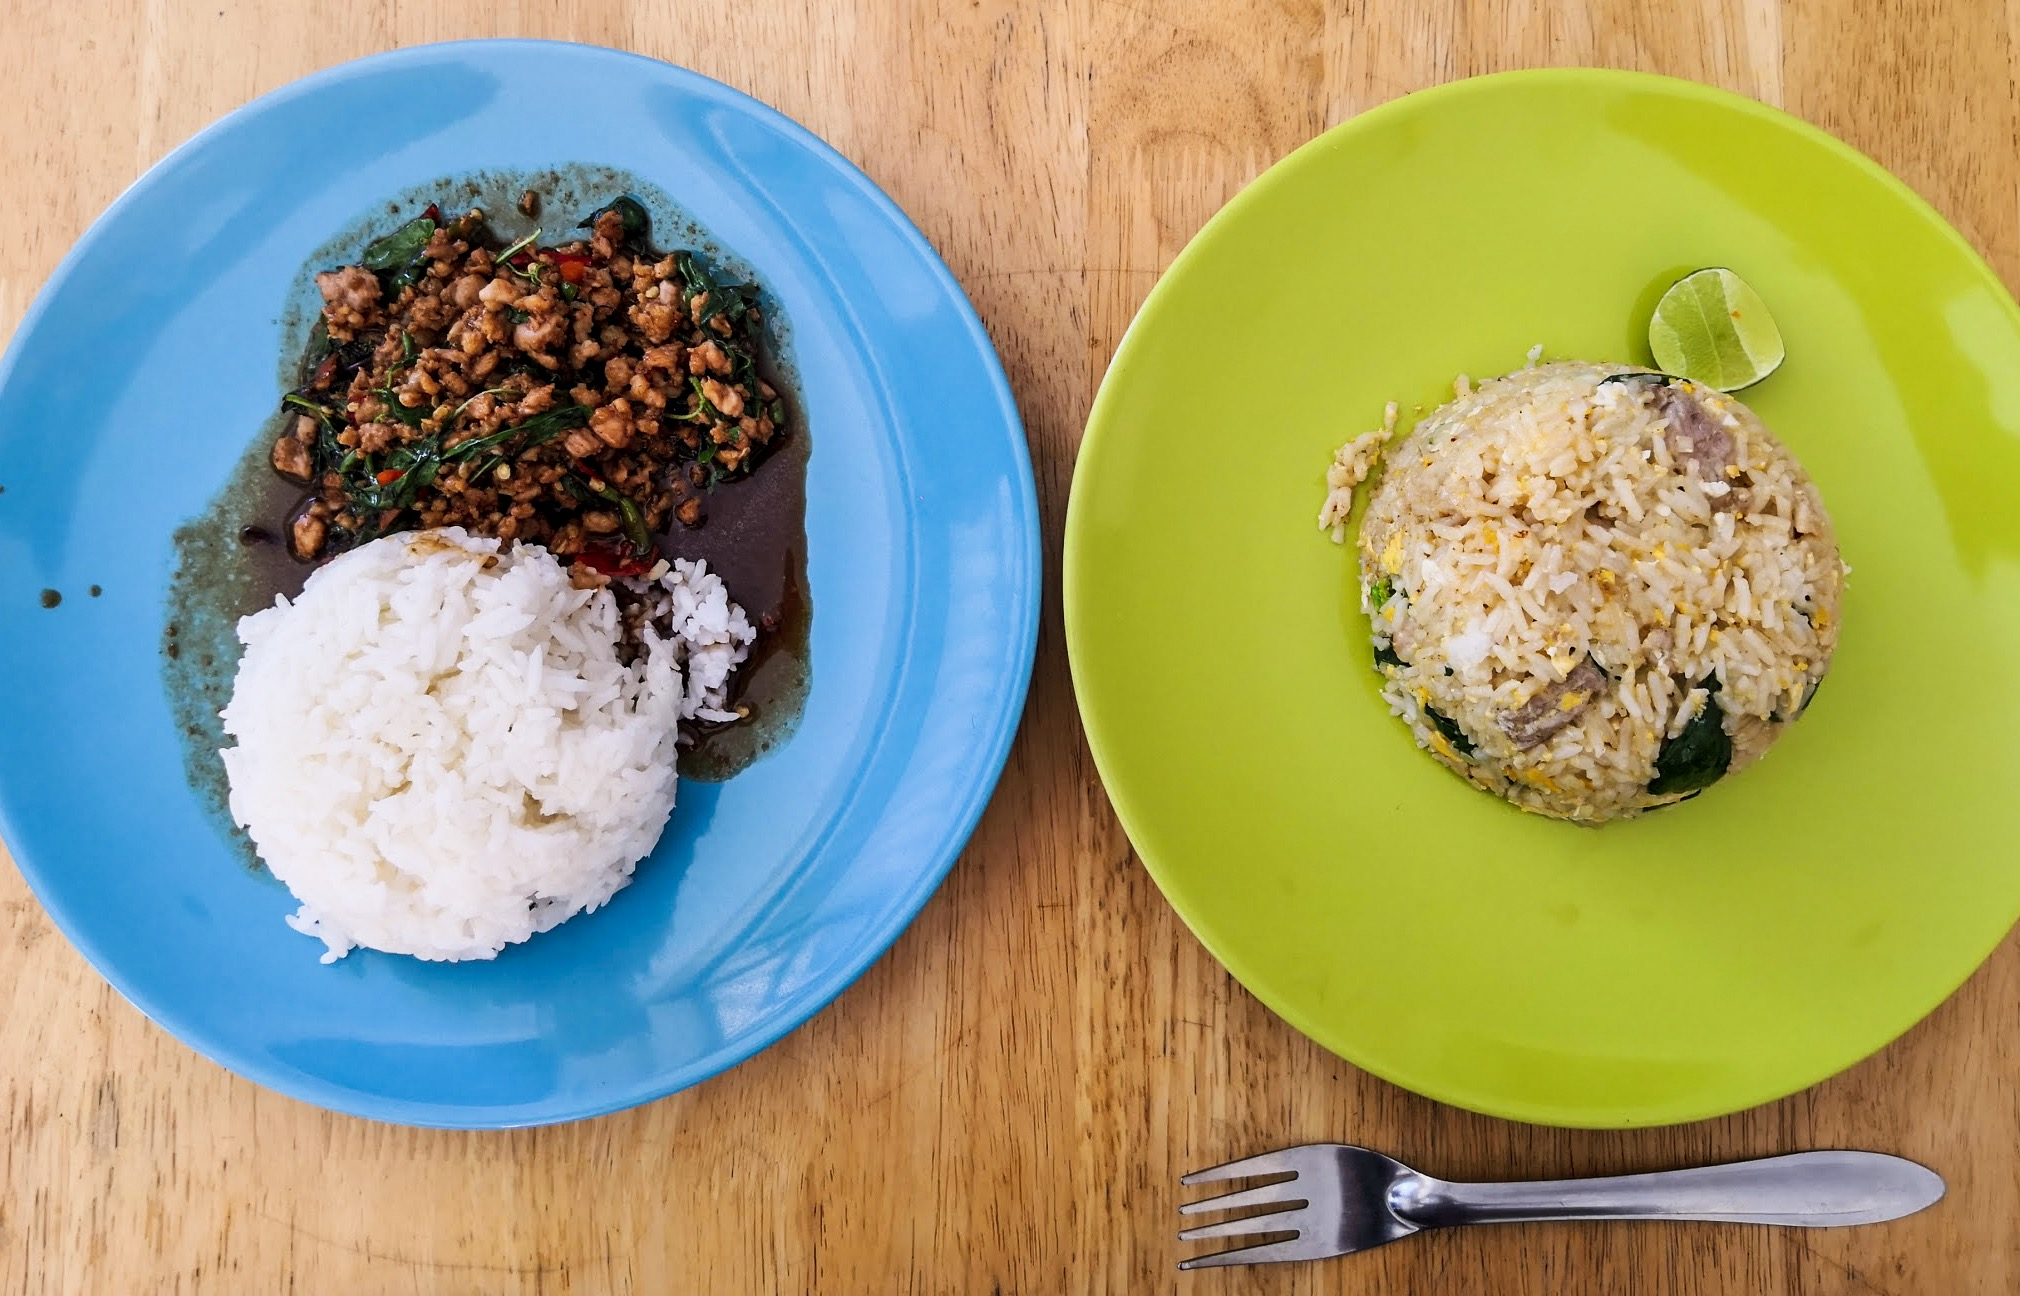 On the left: Minced Pork With Basil In Chilli Soy Souce With Steamed Rice - I ate this nearly every other day. On the right: Fried Rice With Pork - doesn't look like an adult portion but it is filling